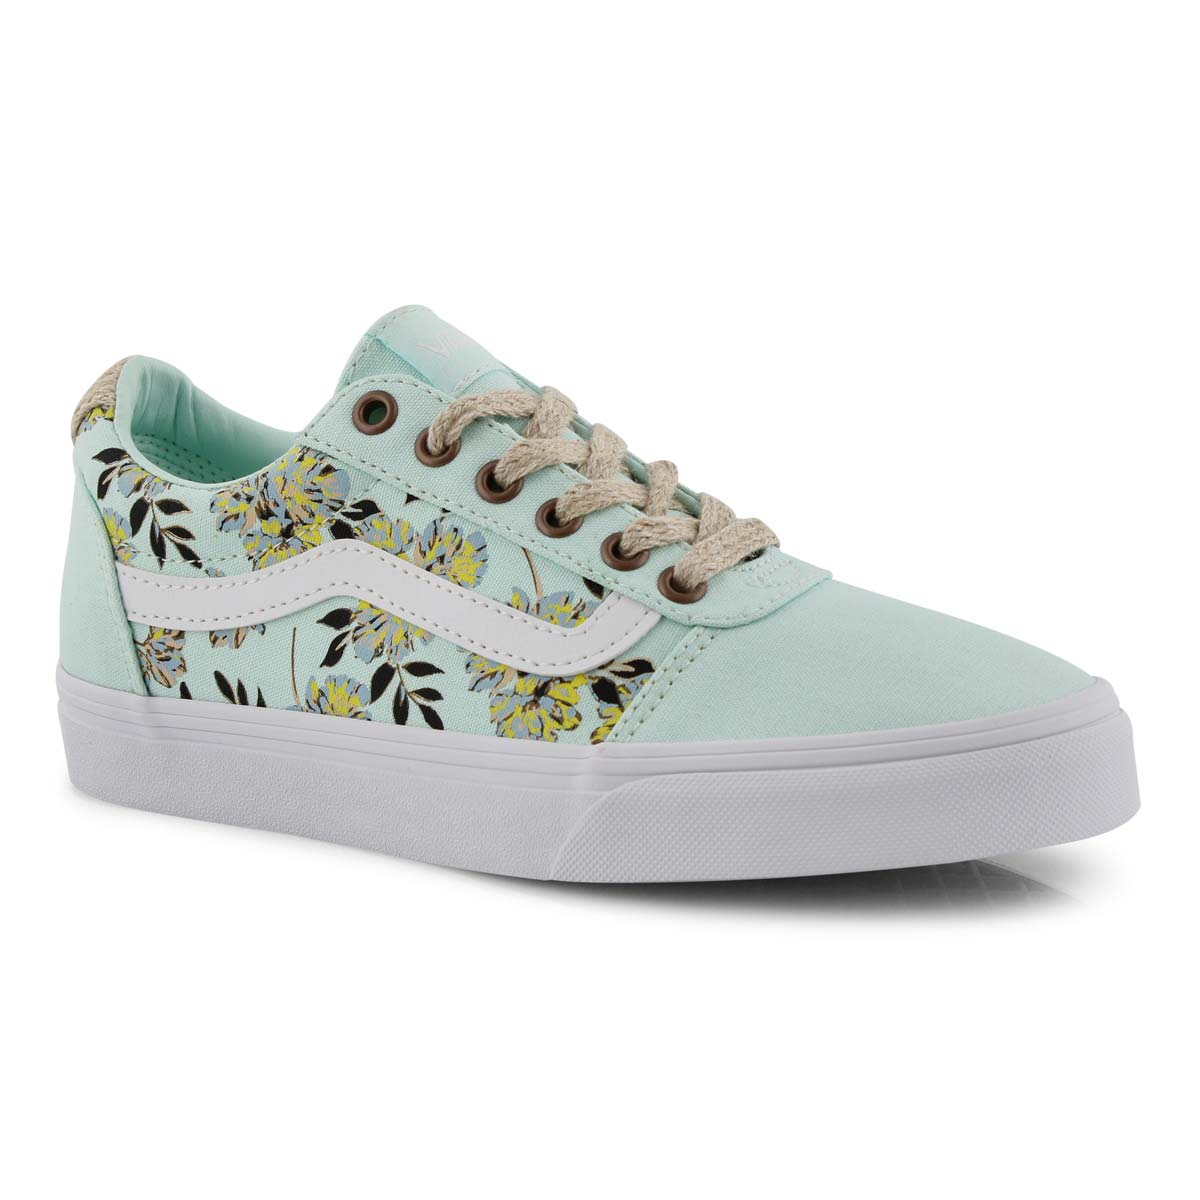 99a3d6b80 Women's WARD floral soothing sea laceup sneakers